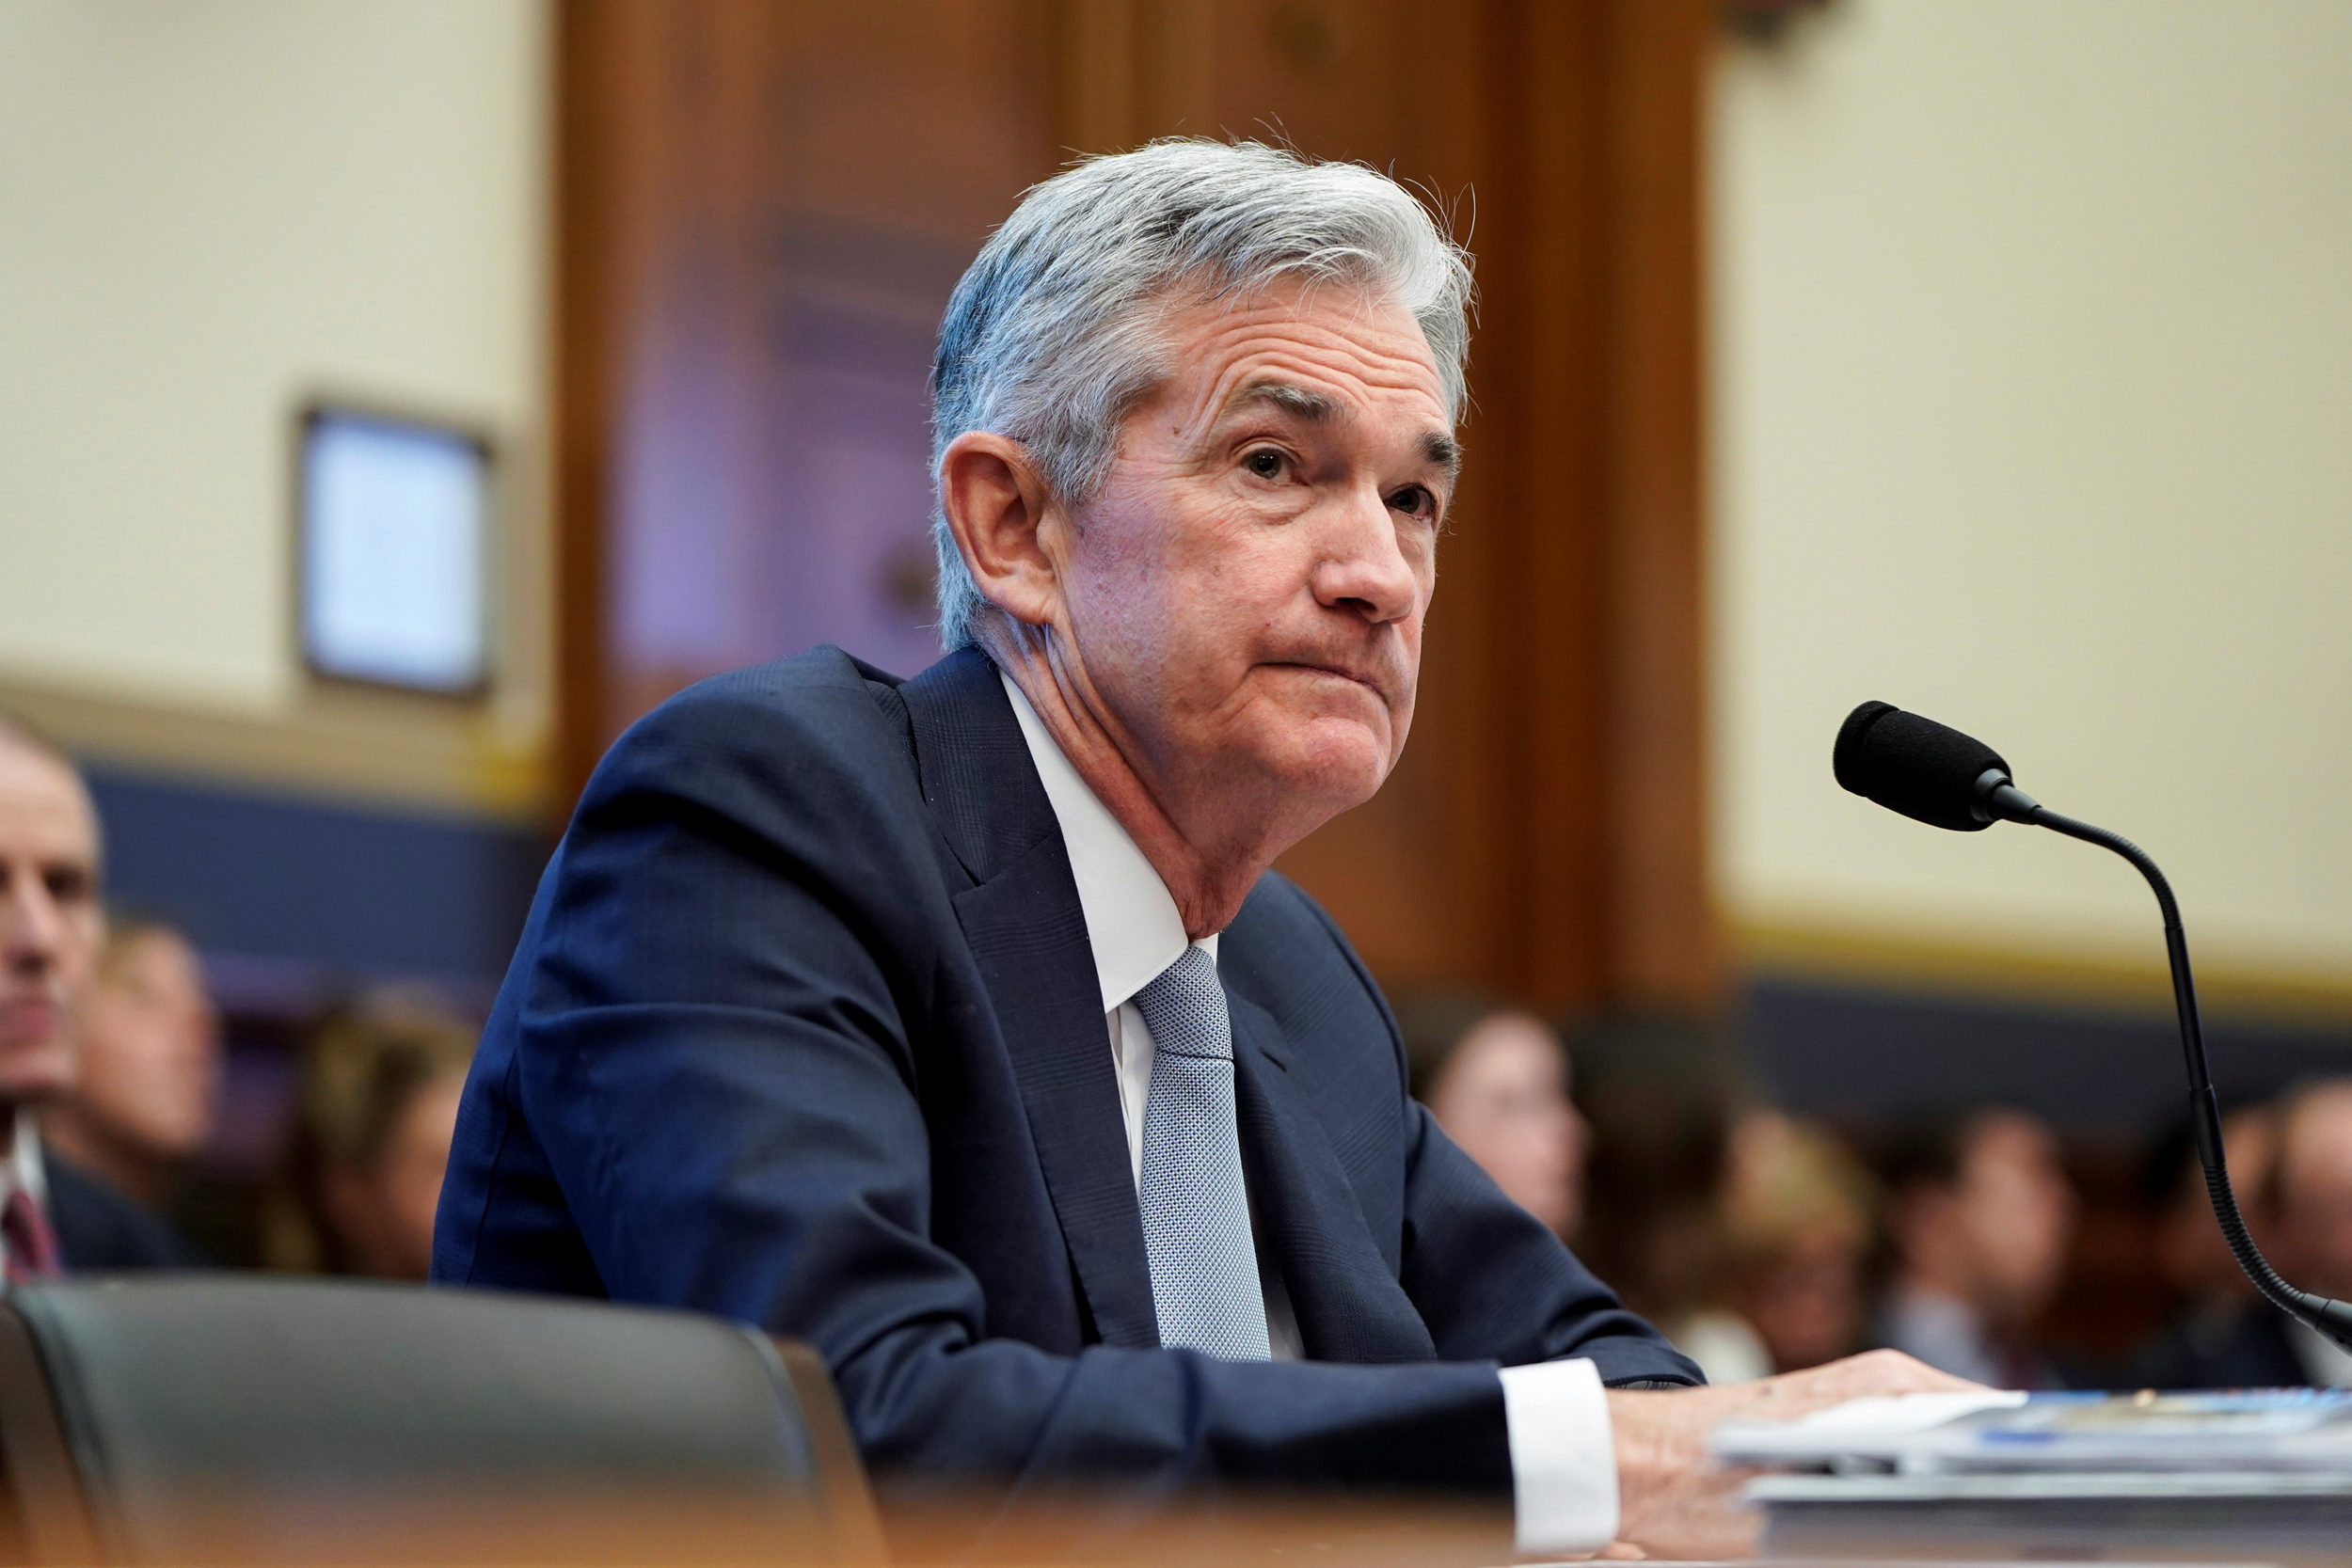 Fed-holds-line-on-rates,-says-no-more-hikes-ahead